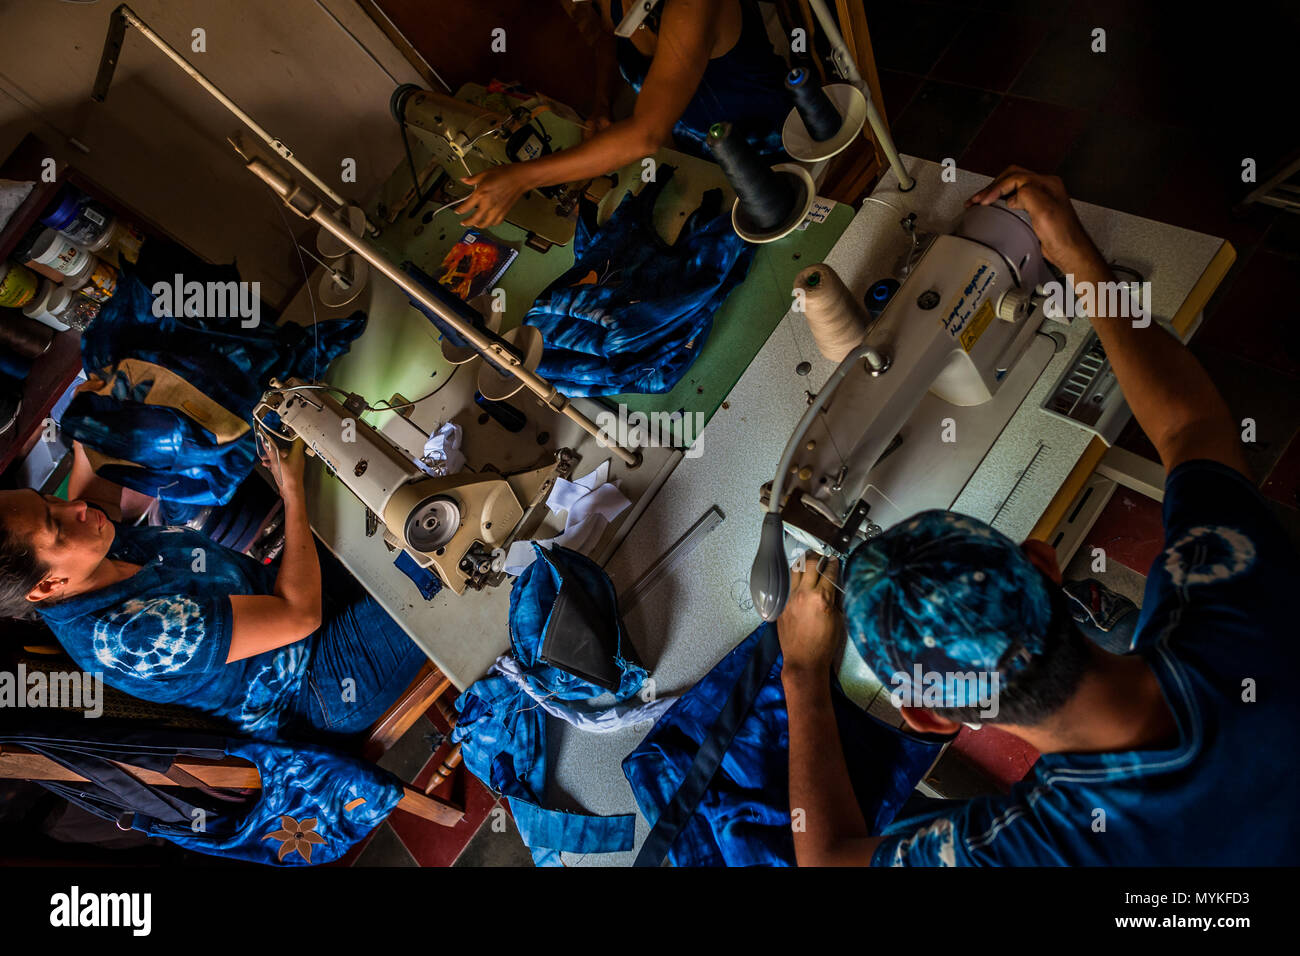 Salvadoran seamstresses sew indigo-dyed tote bags on the sewing machines in an artisanal clothing workshop in Santiago Nonualco, El Salvador. - Stock Image